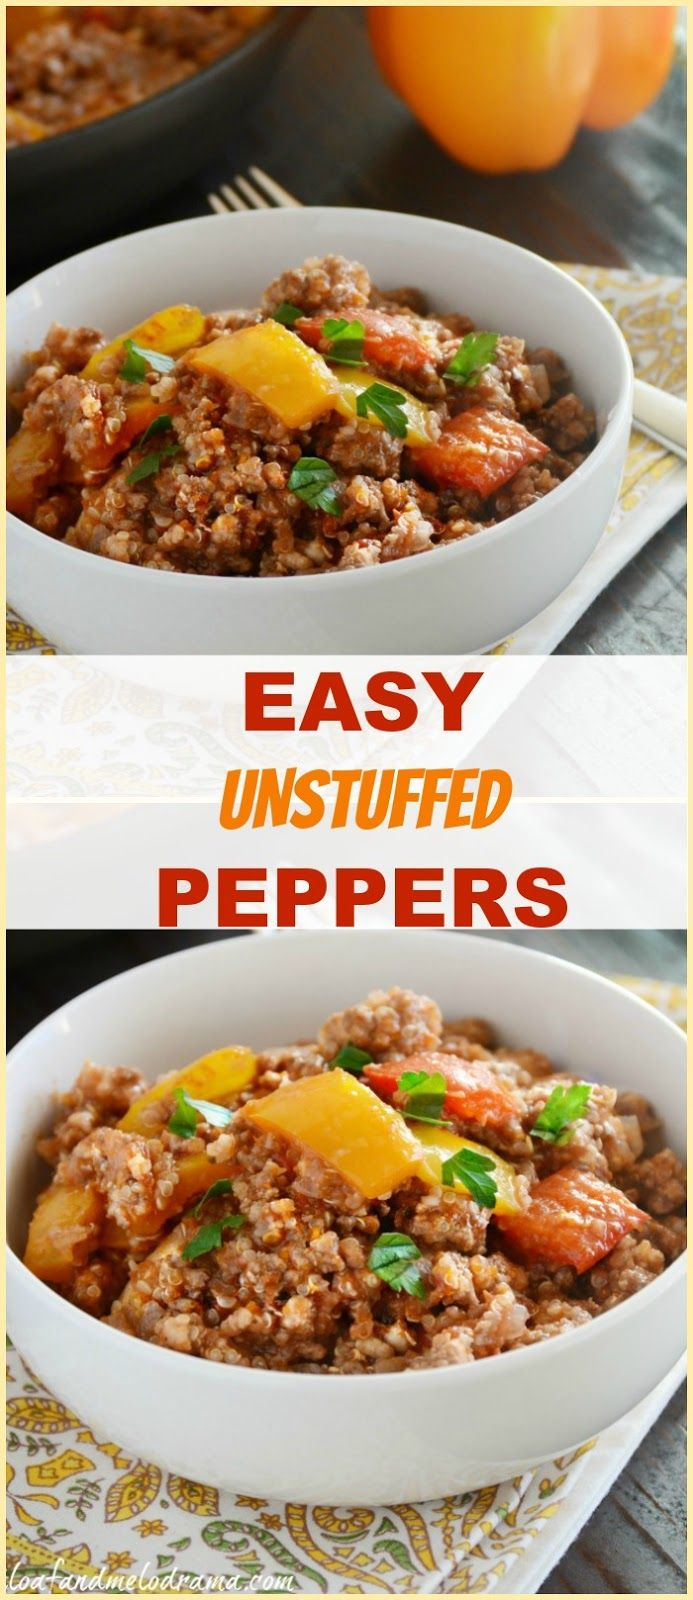 Easy Budget Friendly Spring Decorating: Easy Unstuffed Peppers Made In One Pan, With Beef, Pork